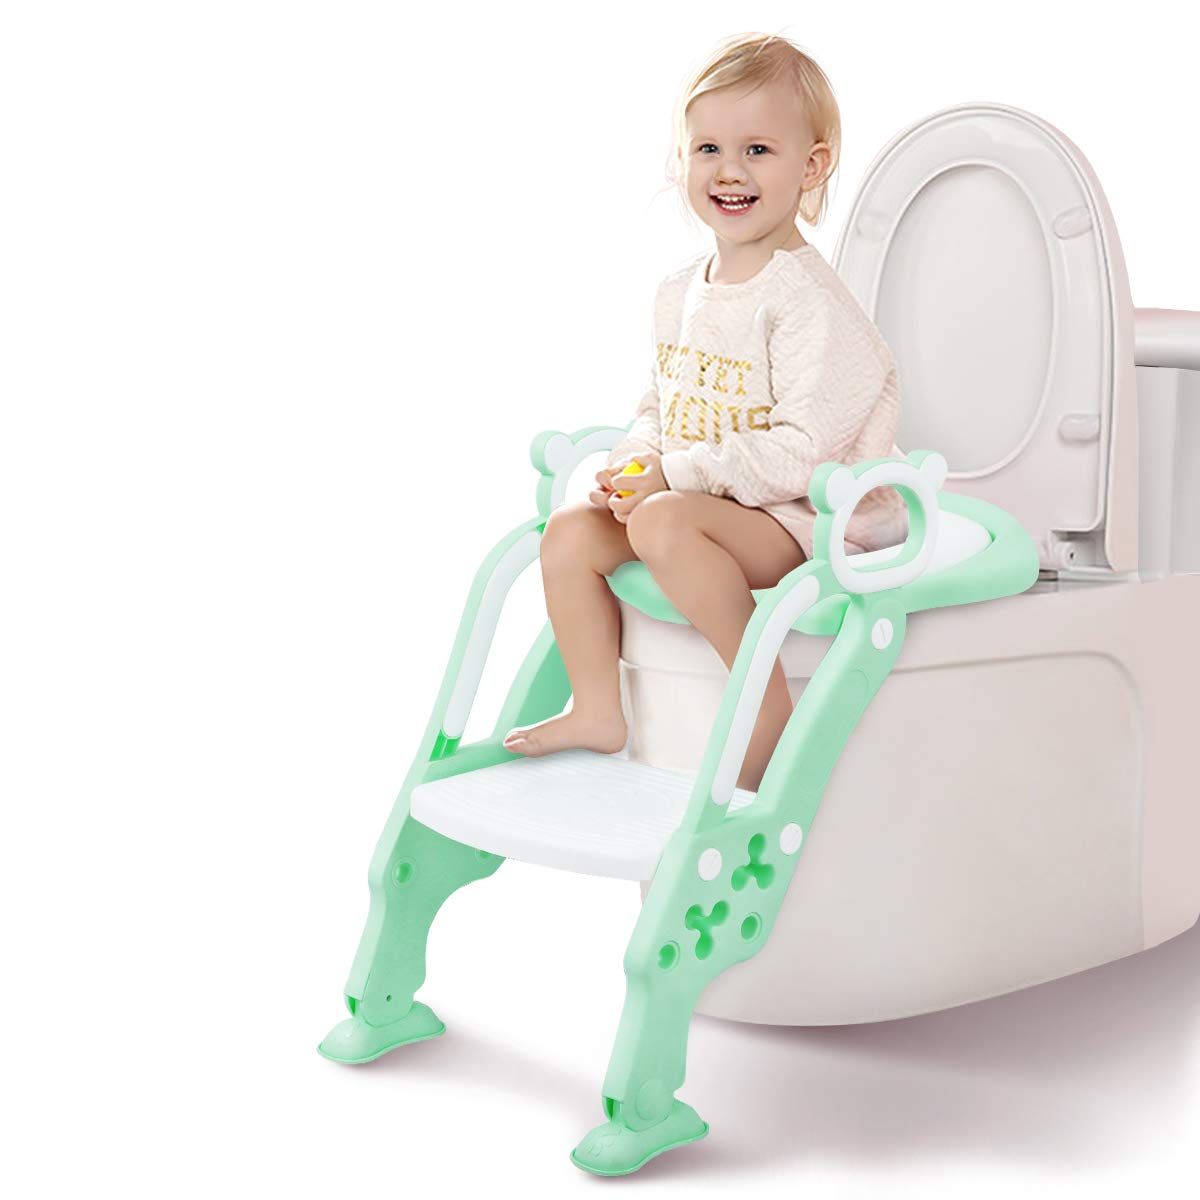 GrowthPic Potty Training Seat, Toddler Toilet Seat, Potty Chair with Splash Guard for Kids, Anti-skid, Soft Cushion, Potty Ladder, Green by GrowthPic